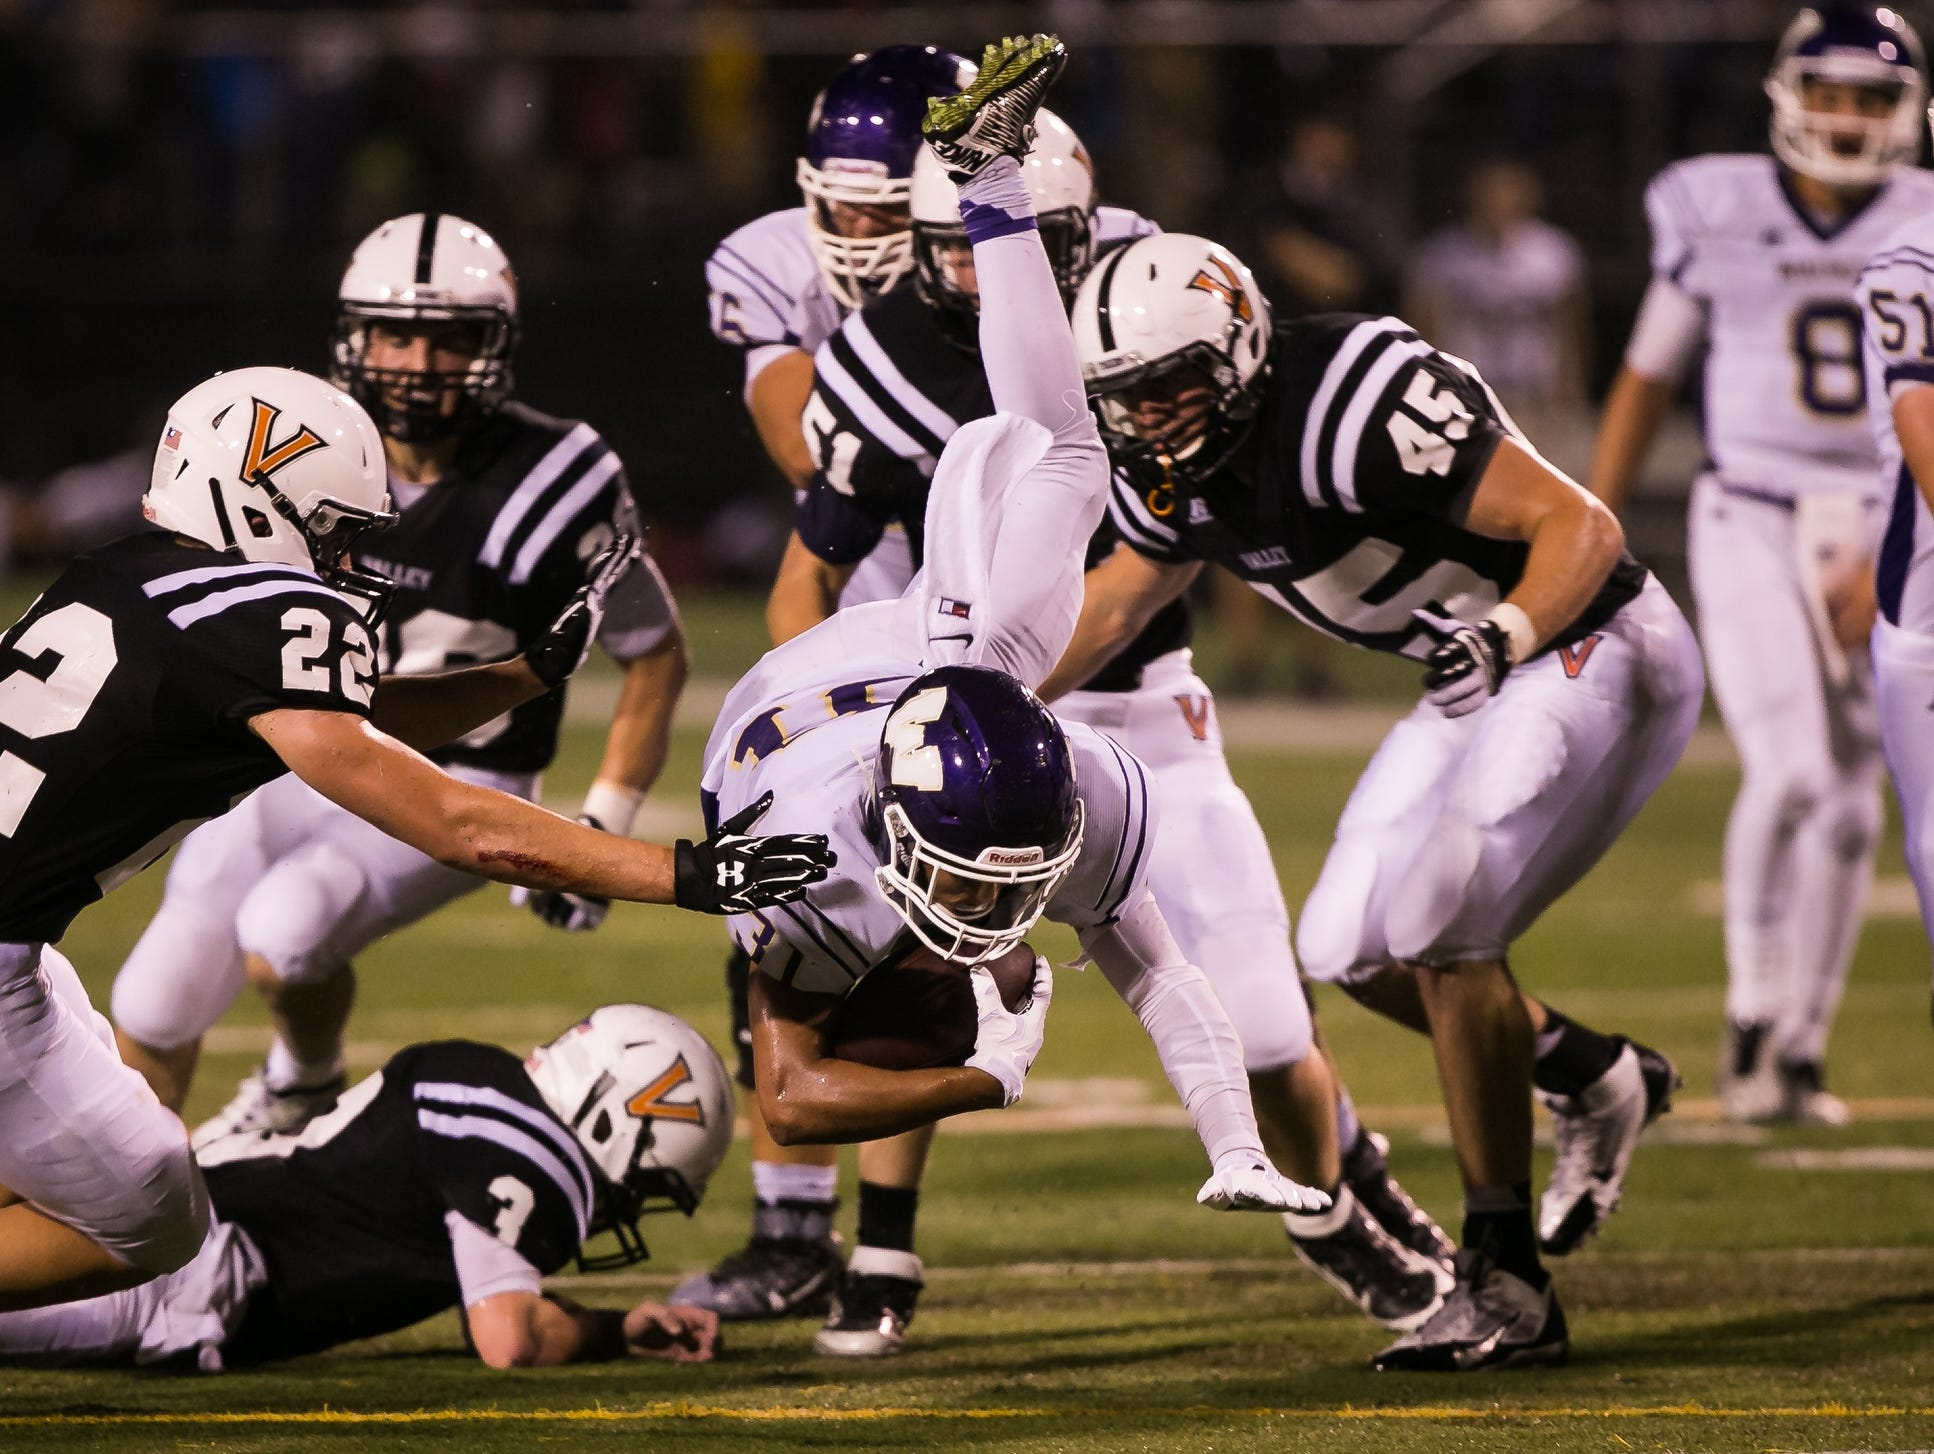 Waukee's Daniel Ray gets up-ended during their game against Valley High School at Valley's football field in West Des Moines on Friday, August 28, 2015.